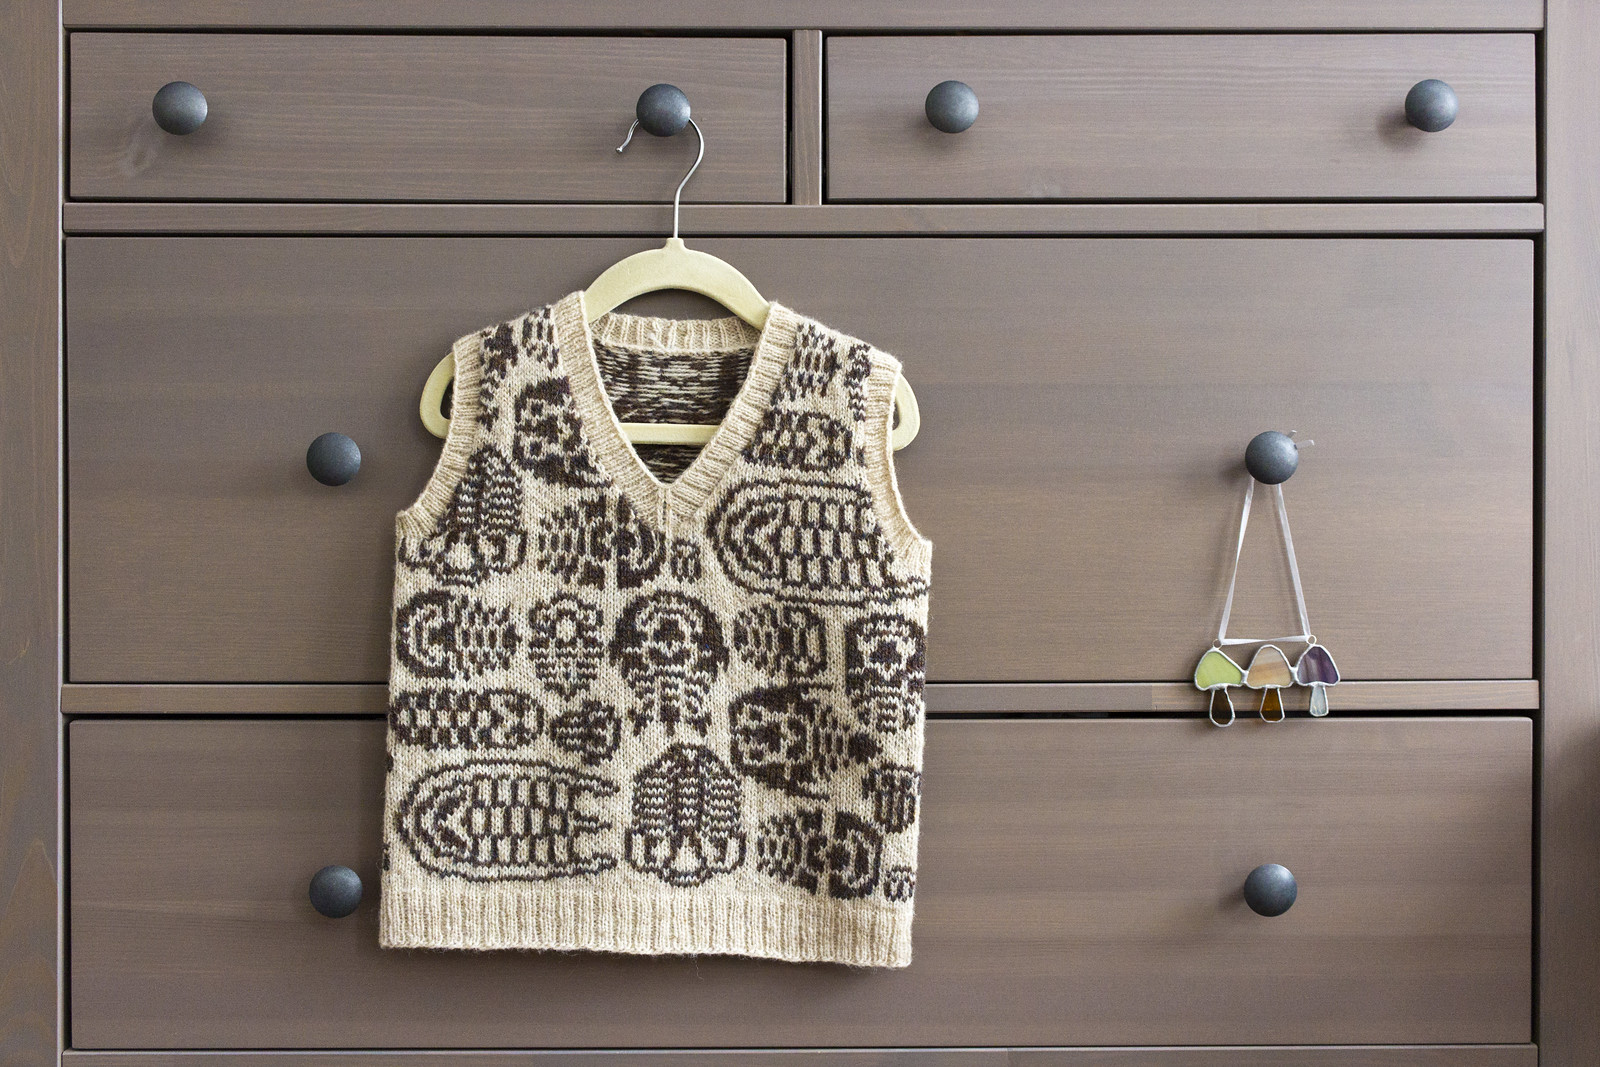 trilobite sweater vest hanging on a chest of drawers